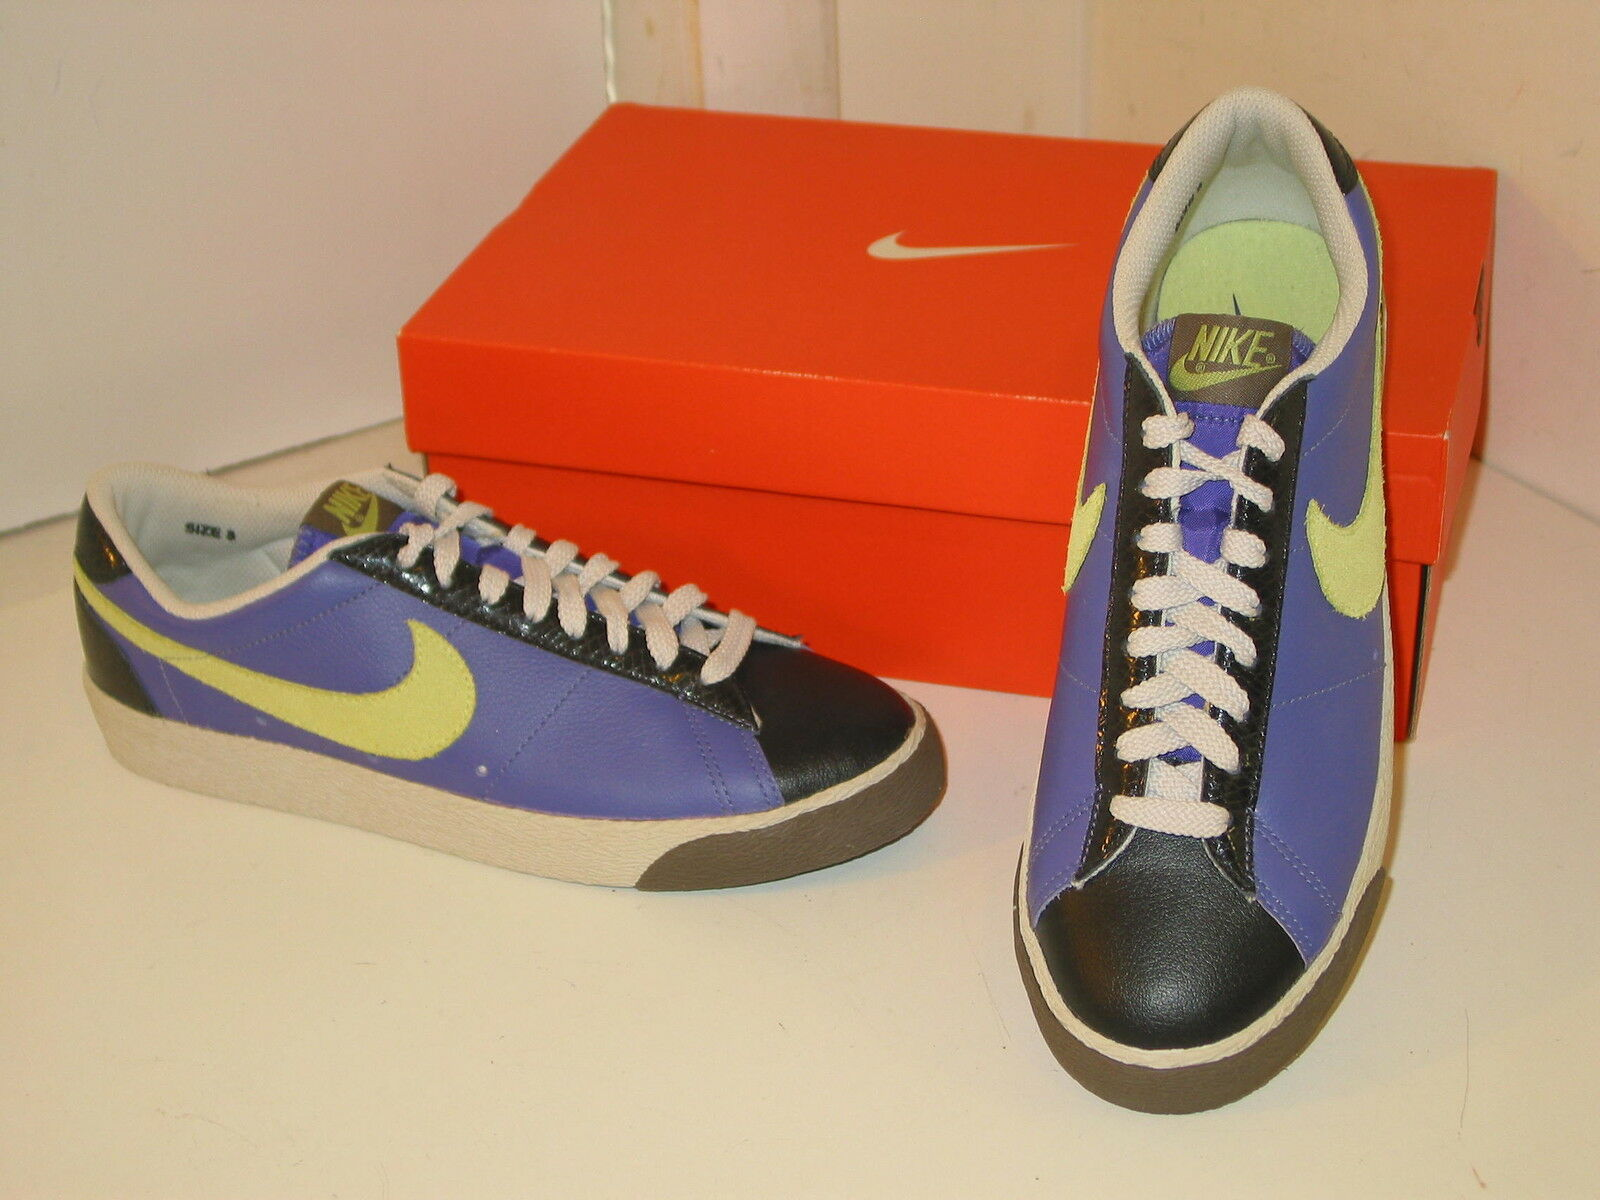 Nike Blazer Low Classic Purple, Yellow & Black Athletic Sneakers Shoes Mens 8 Seasonal price cuts, discount benefits